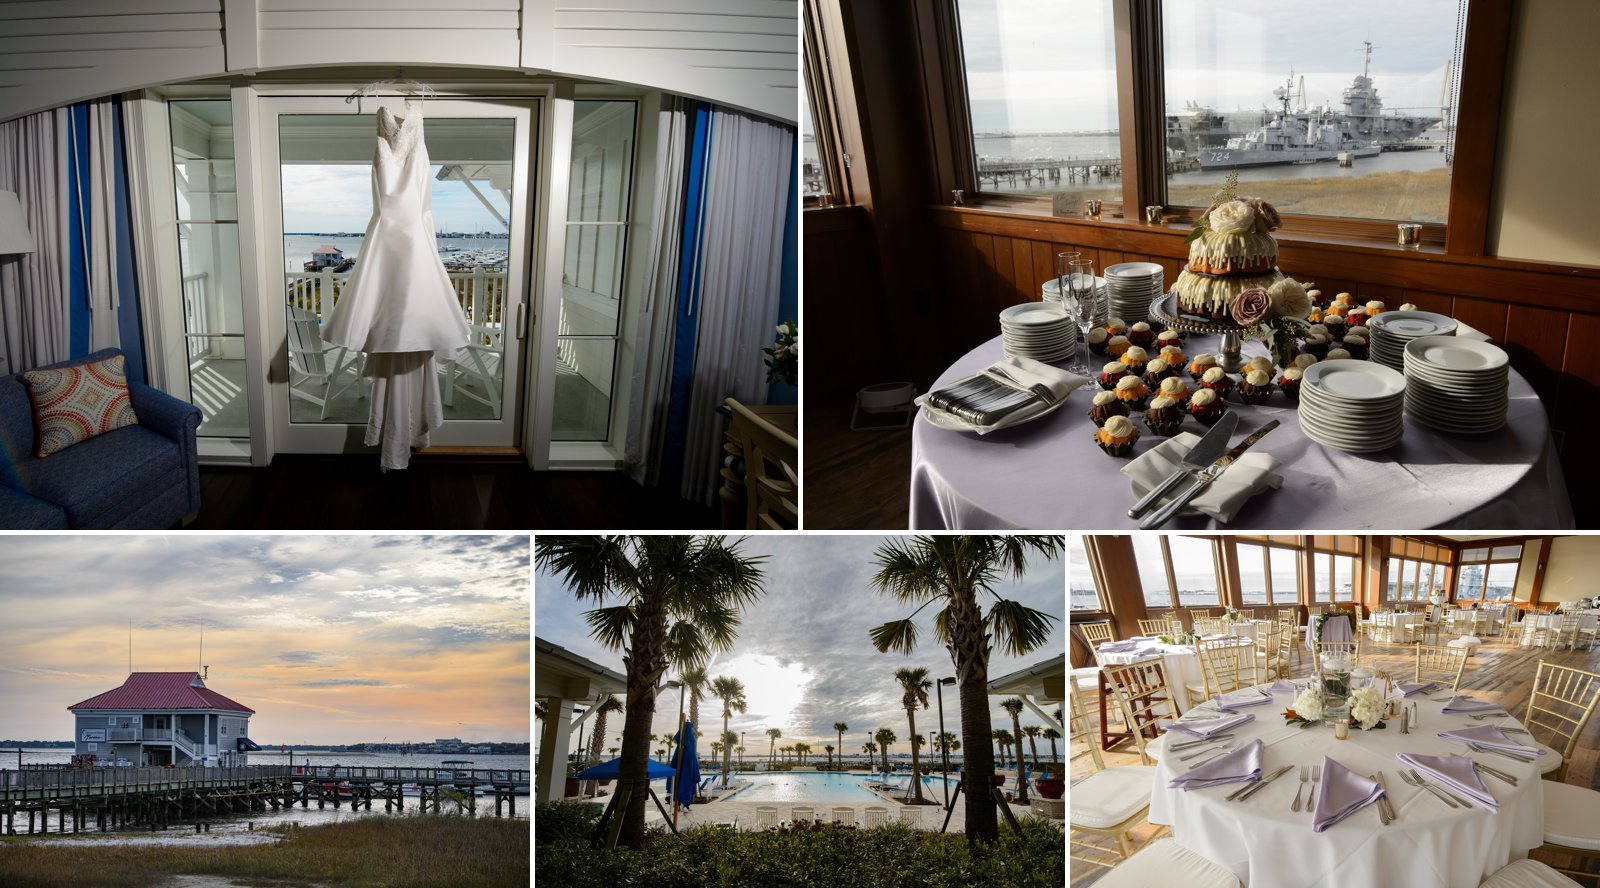 Charleston Harbor Resort and Marina